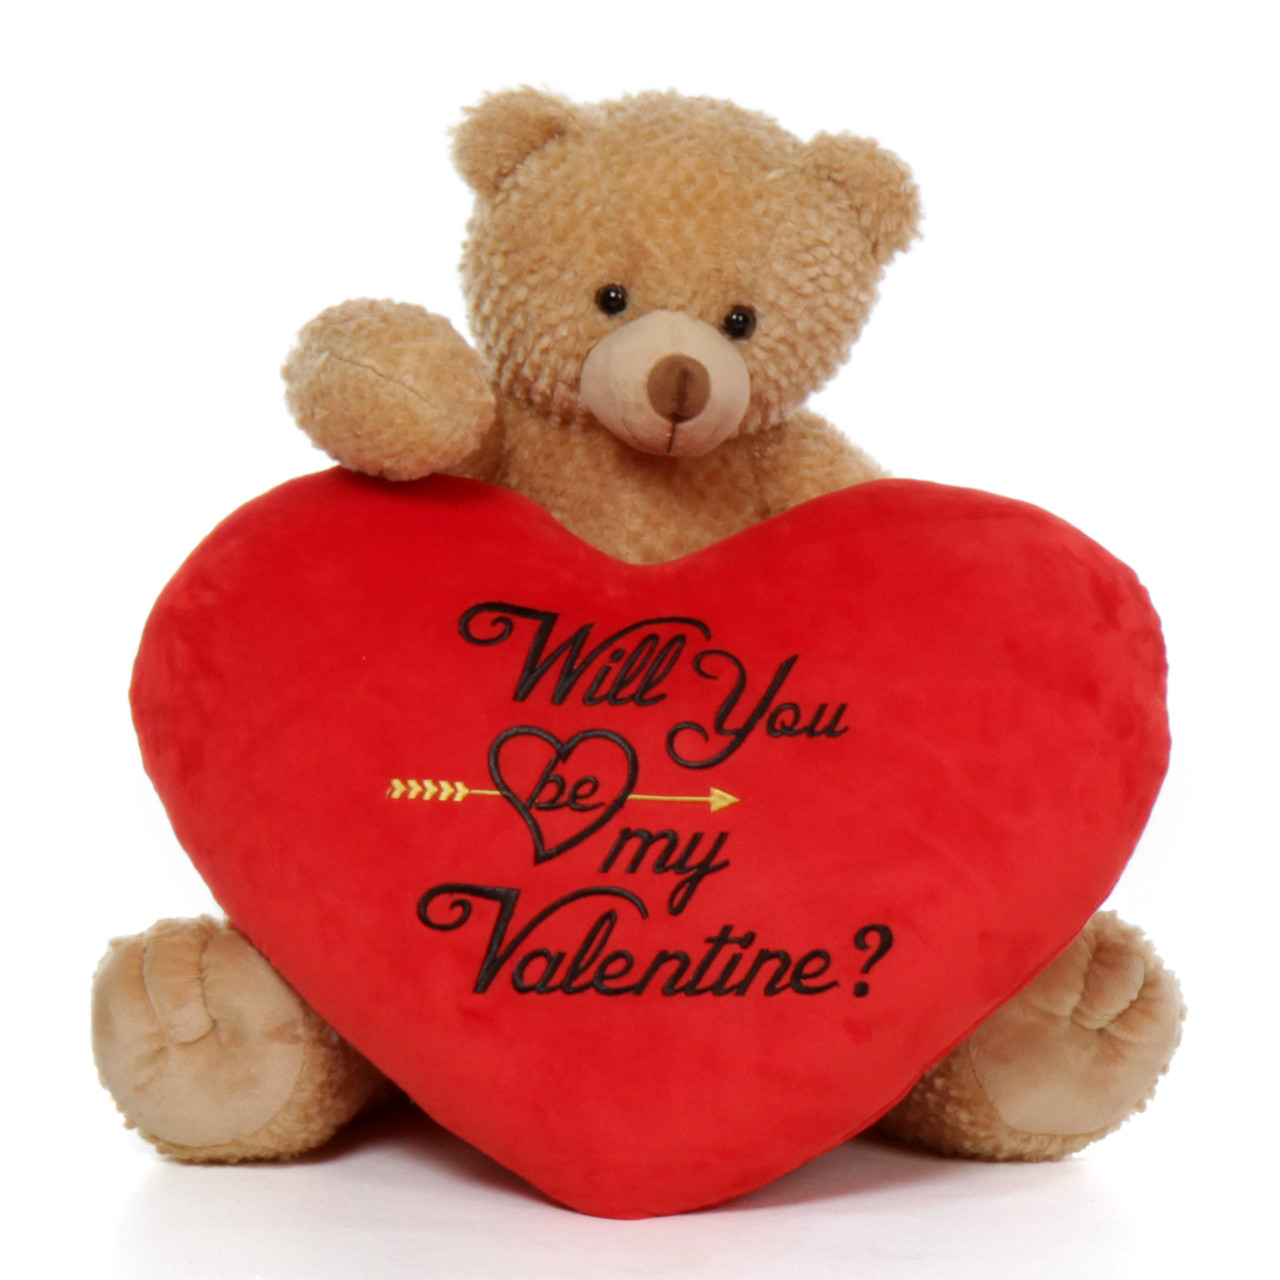 95c1ac8a3d8 24'' Amber Honey Tubs Valentine's Day Bear with Will You Be My Valentine  Plush